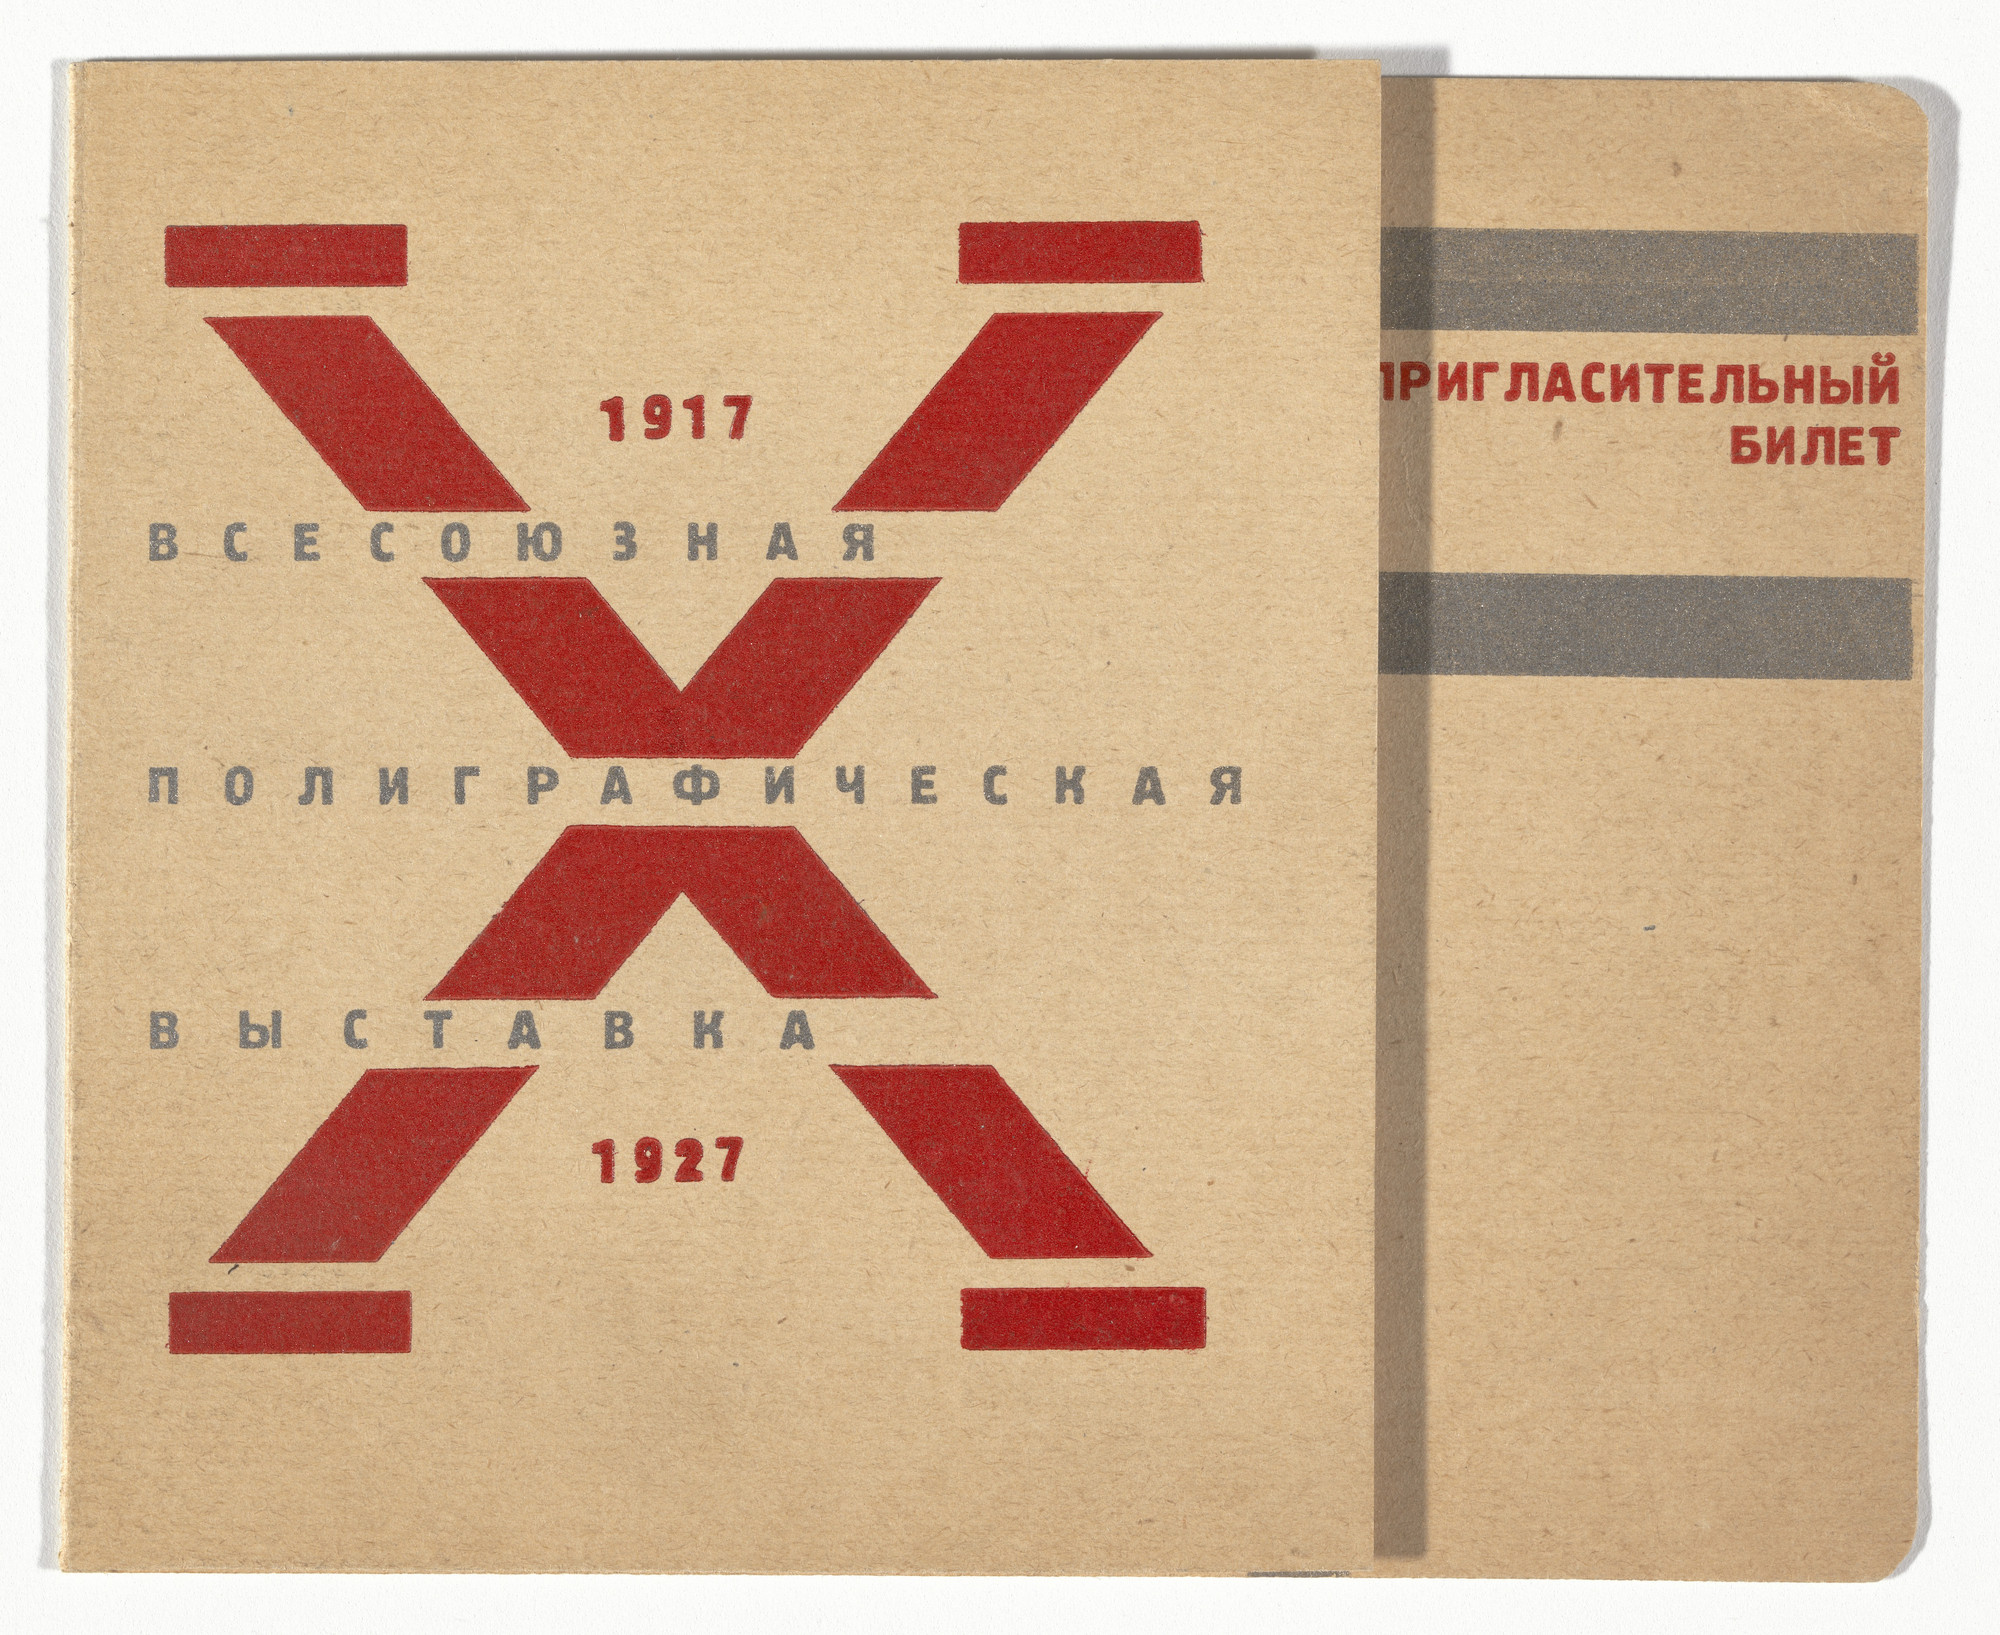 El Lissitzky. Invitation to the All-Union Printing Trades Exhibition. 1927